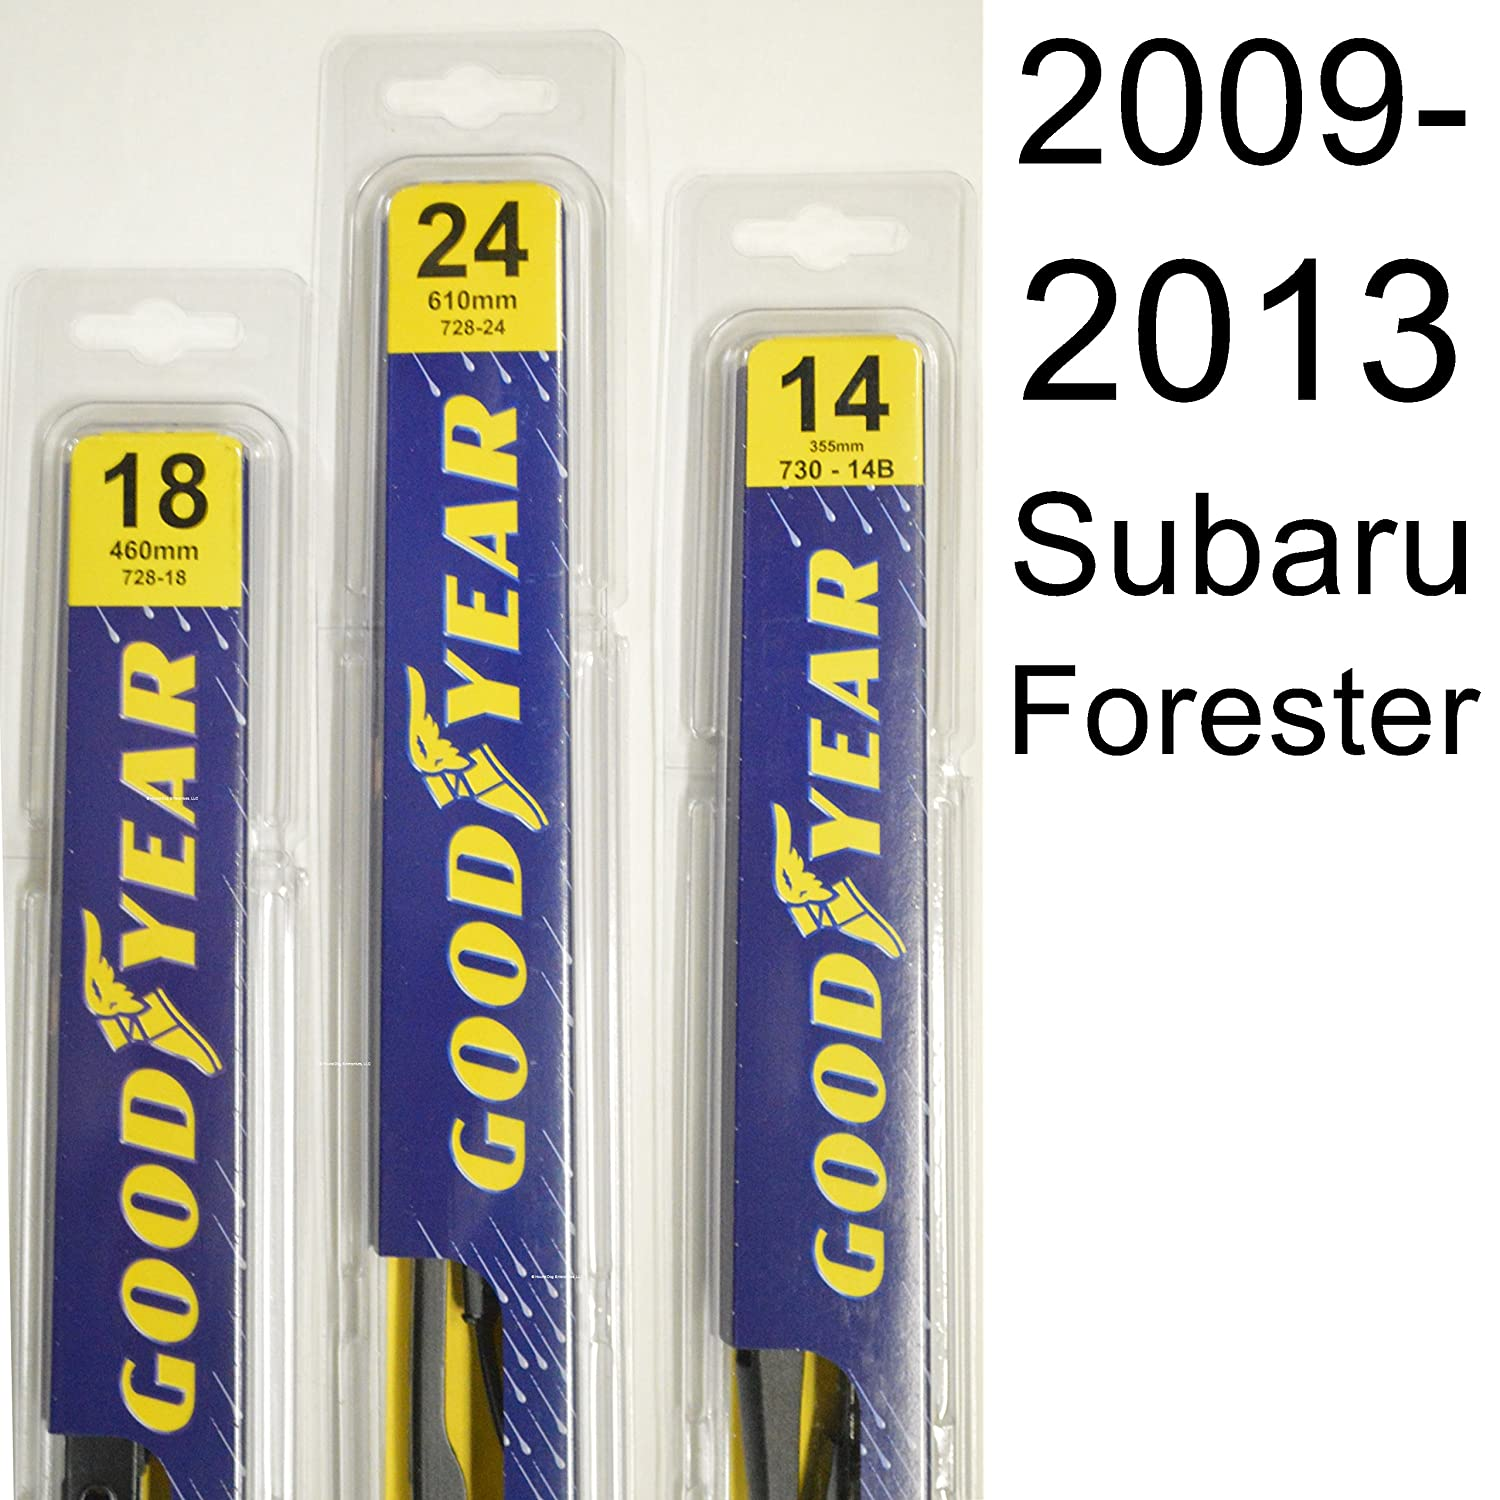 subaru forester 2009 2013 wiper blade kit set